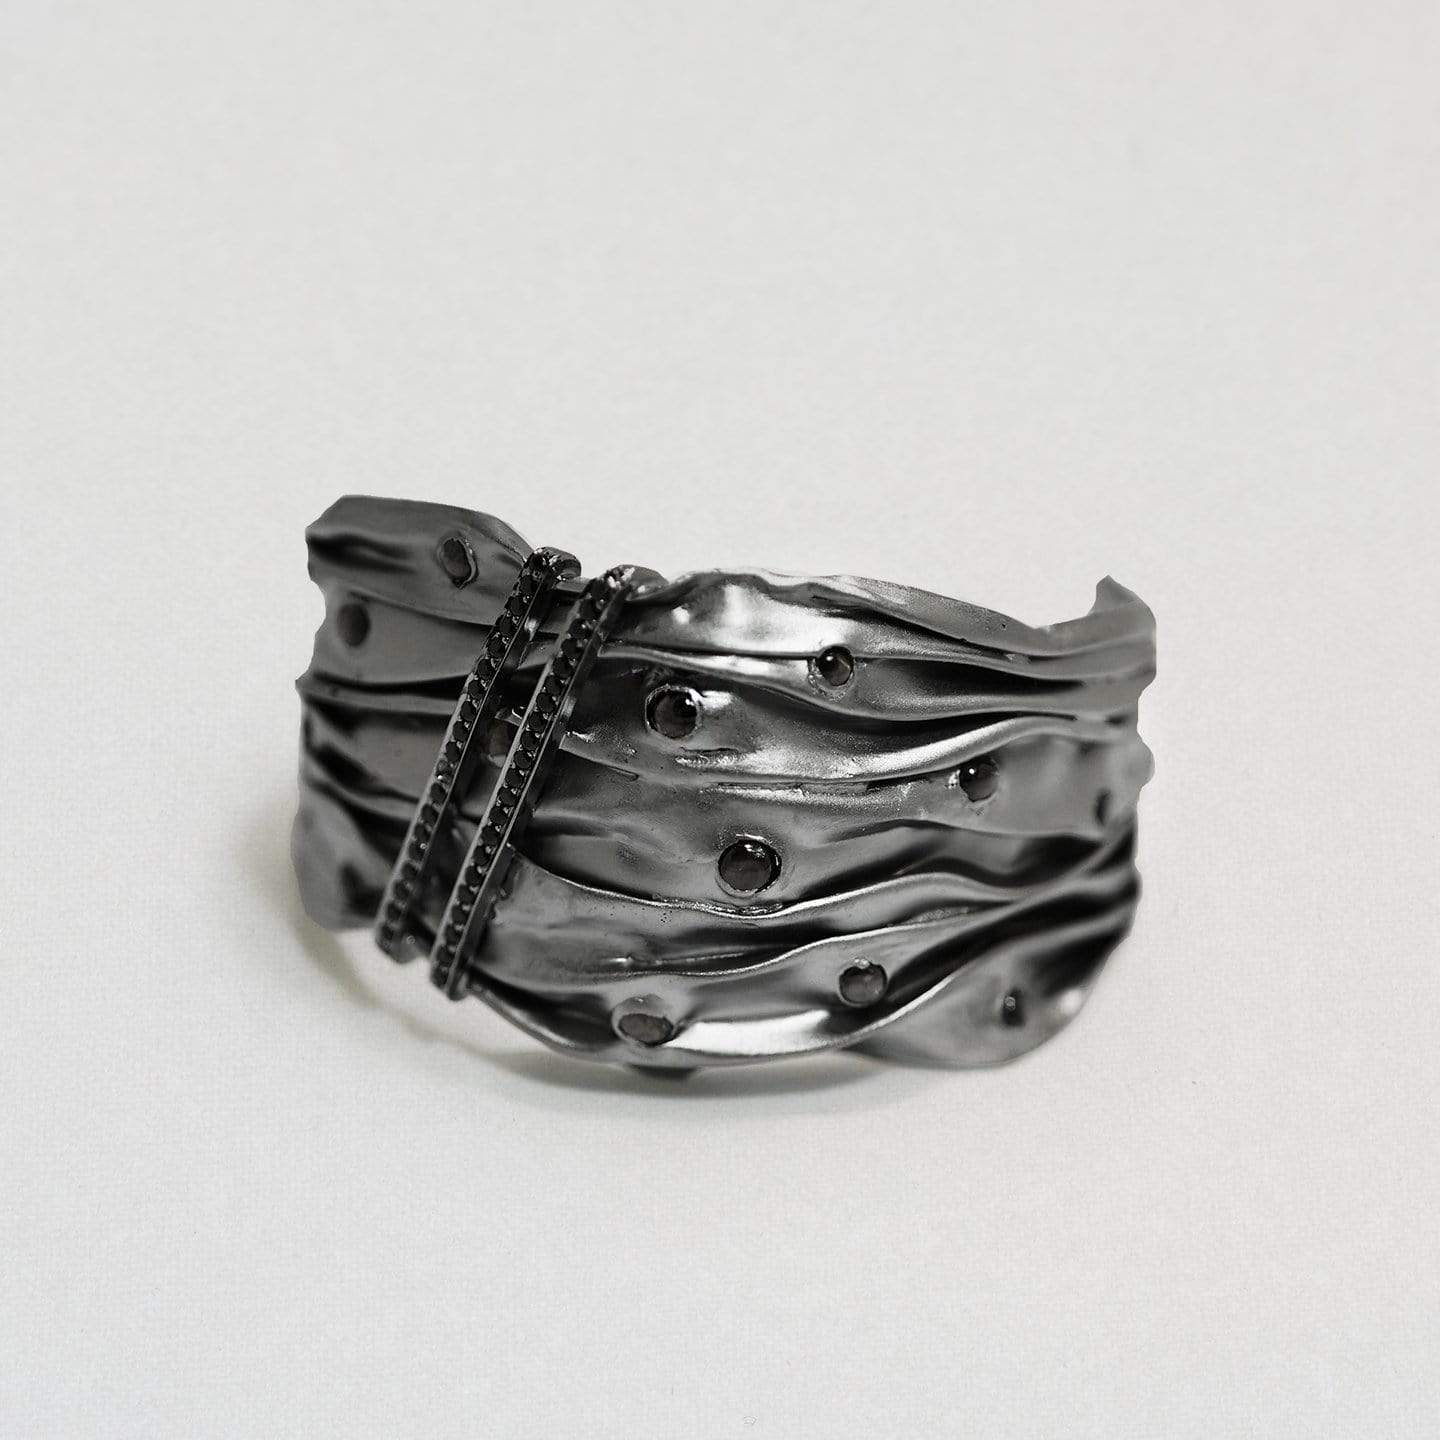 A rippled style texture on a black rhodium bangle. Within the ripples are rounded smoky quartz gemstones. Two diagonal lines of black spinel gemstones slice up on one side diagonally.